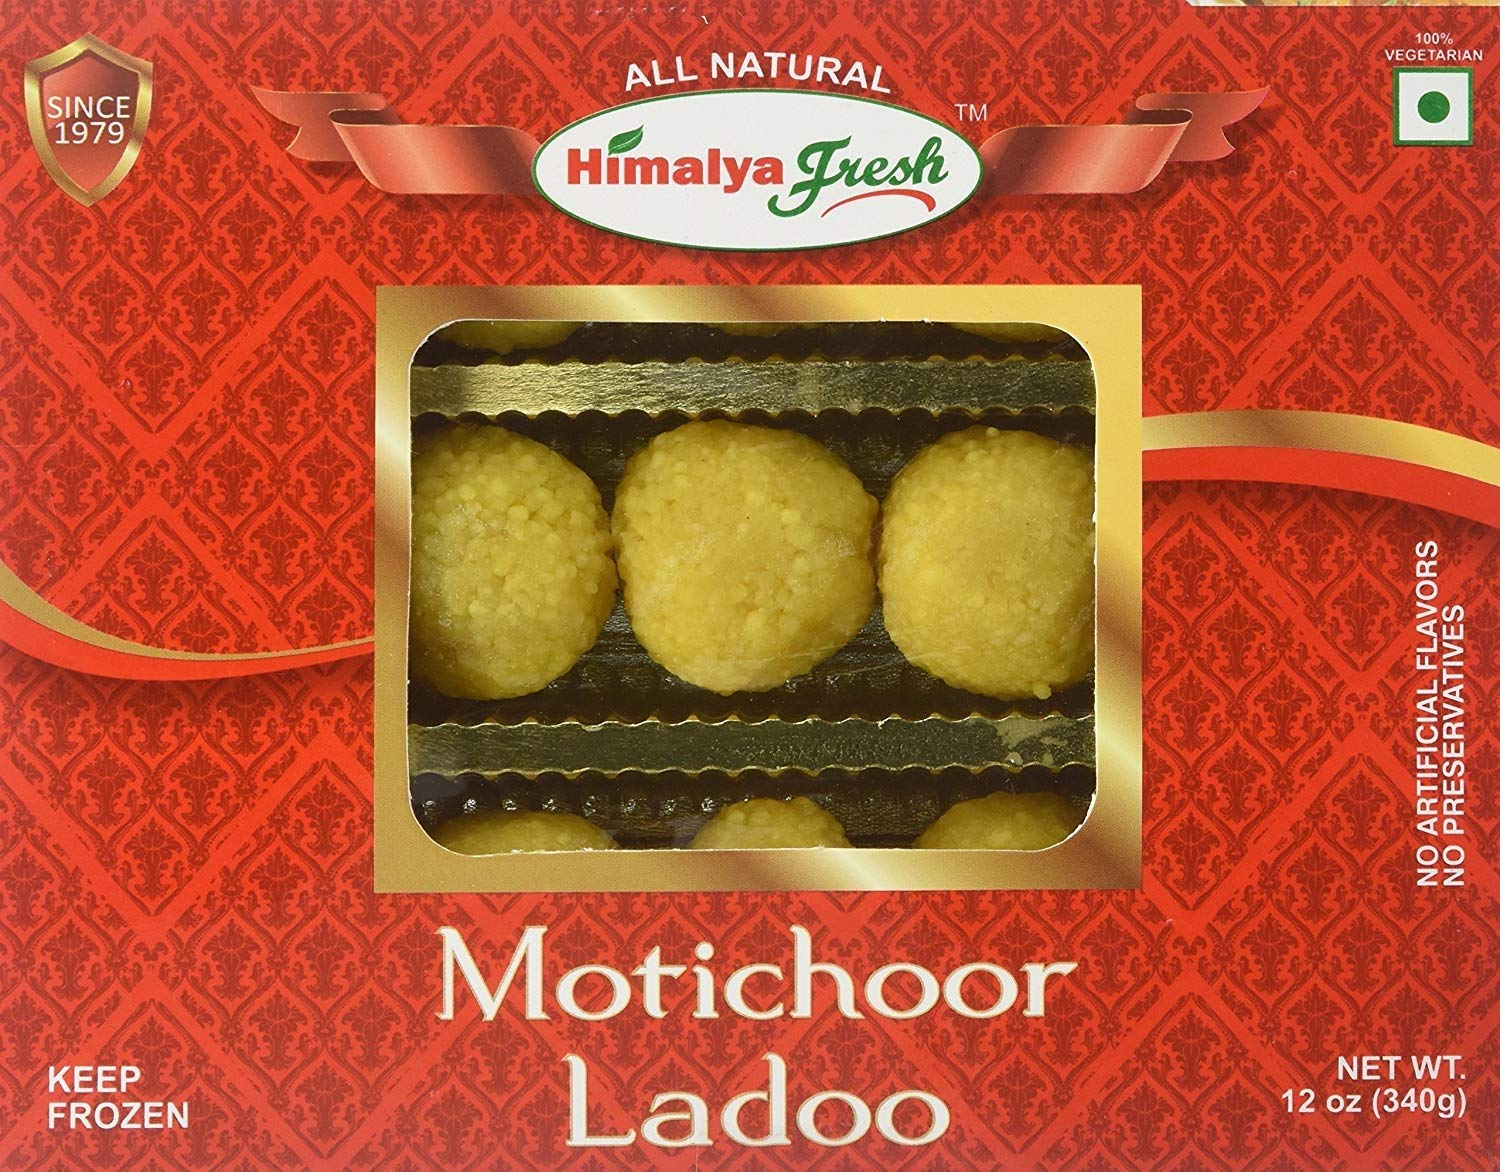 HIMALYA FRESH Motichoor Ladoo 12oz - Premium Authentic Indian Food & Sweets Made With pure simple ingredients Gram flour, Sugar & Vegetable Oil - No Fillers Or Preservatives (2 Boxes)